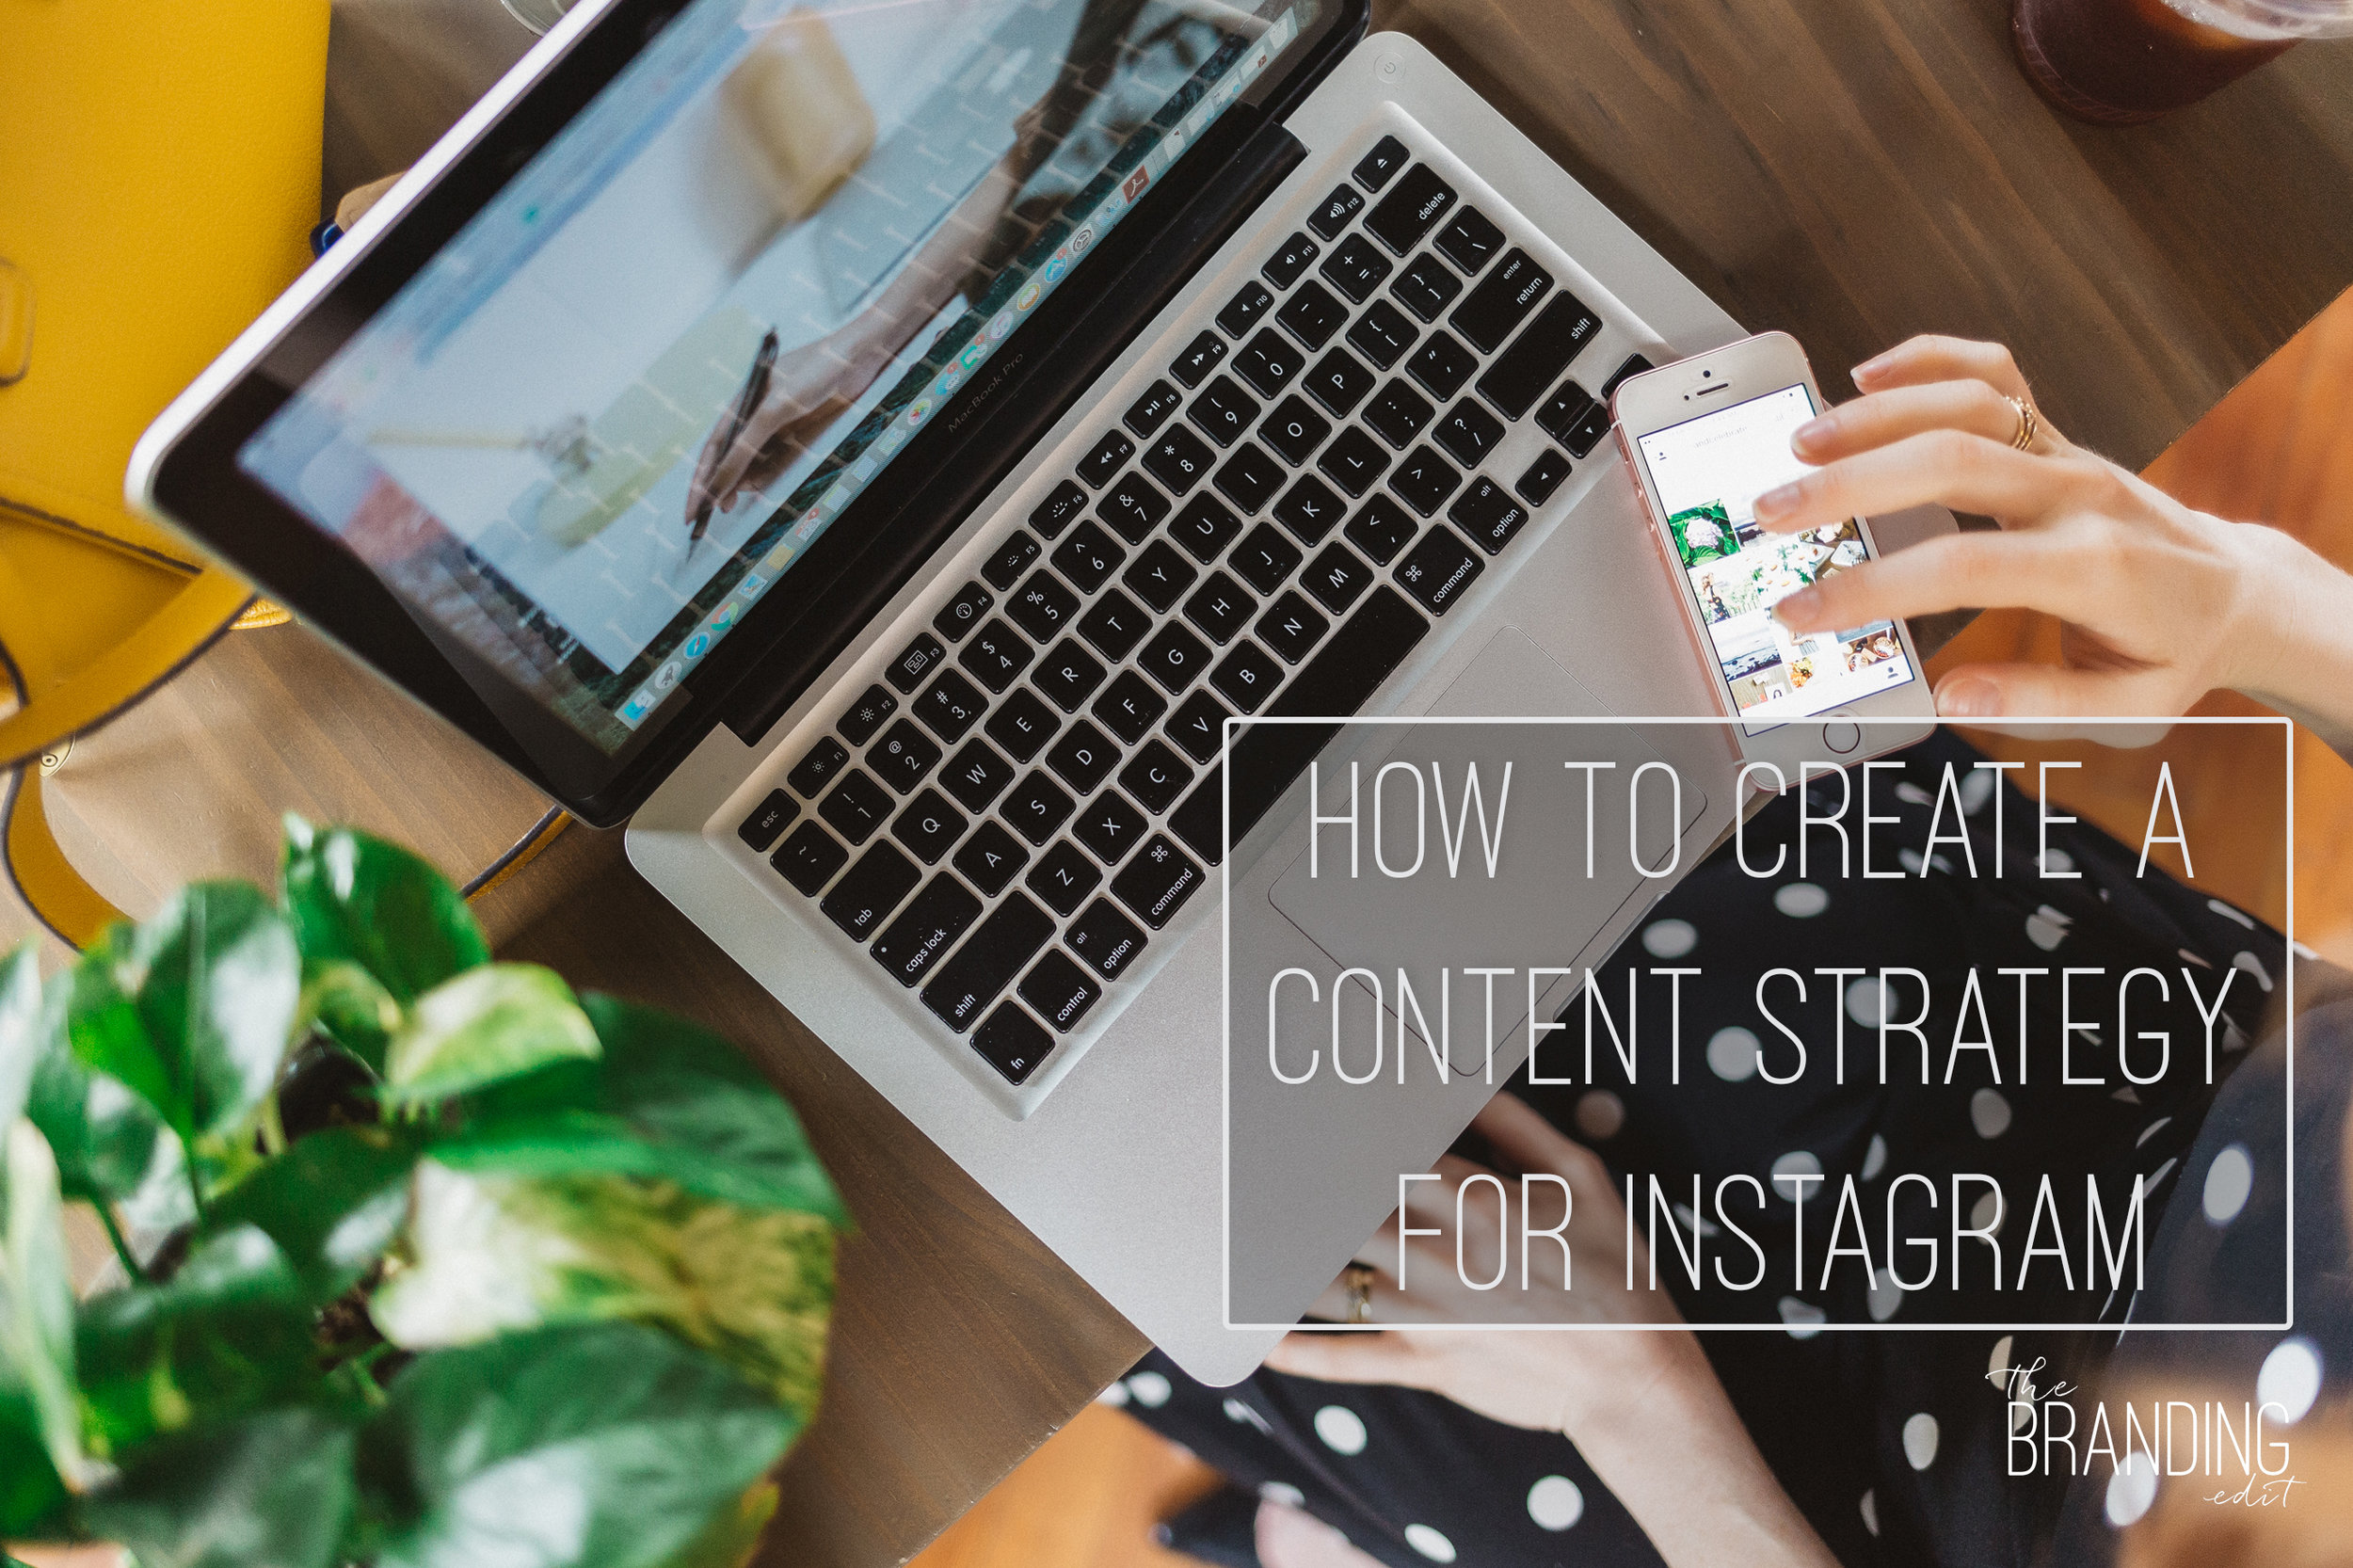 How-to-Create-a-Content-Strategy-for-Instagram.jpg